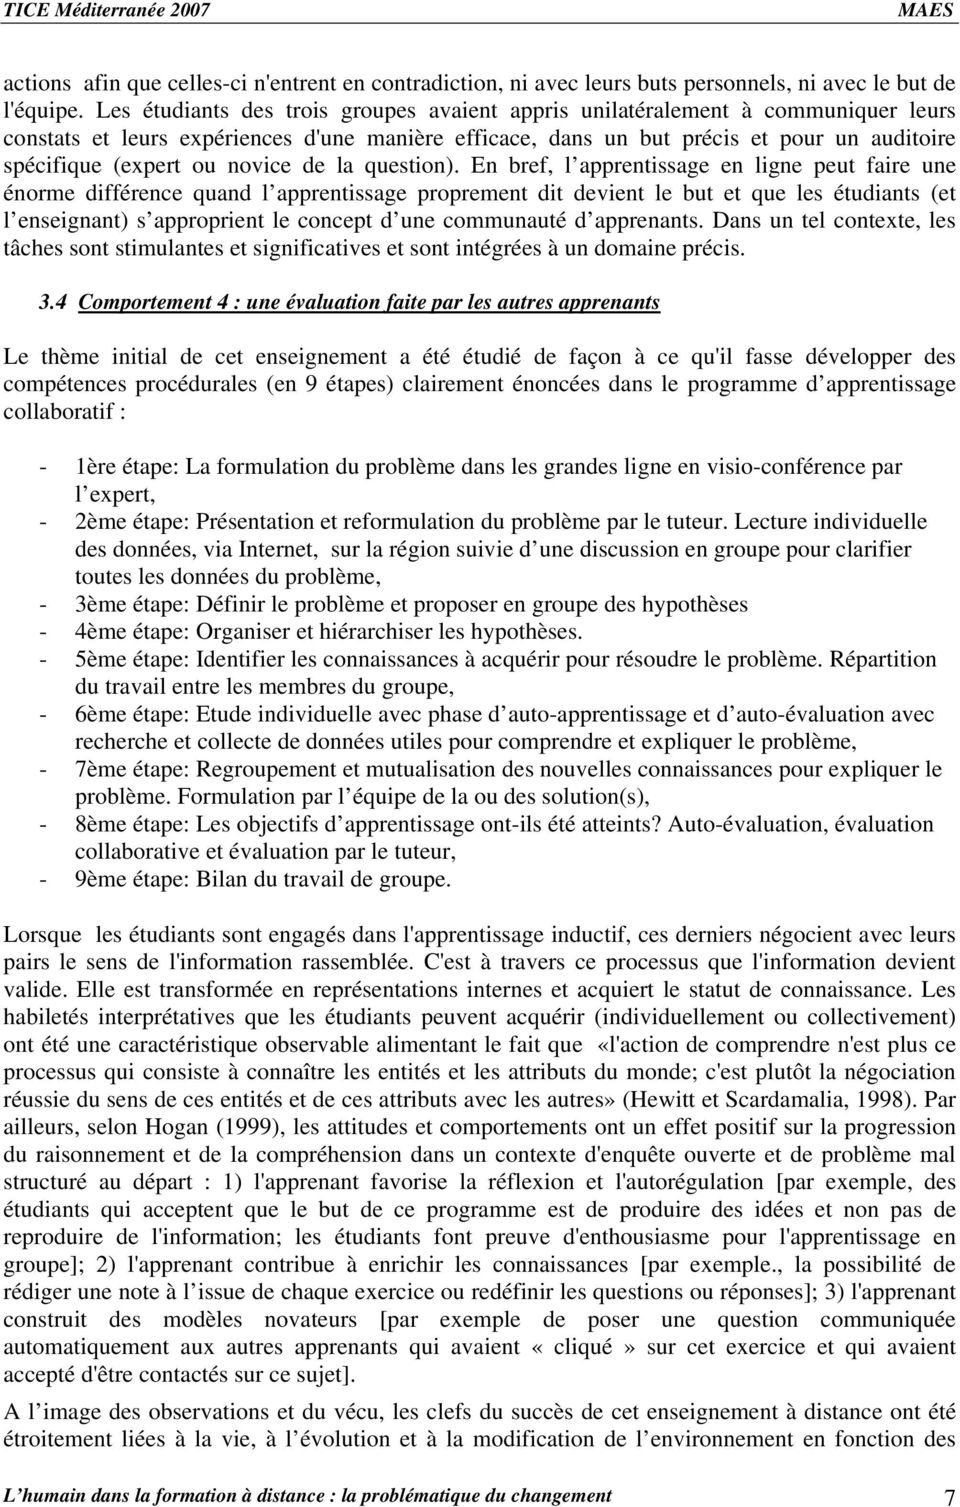 novice de la question).